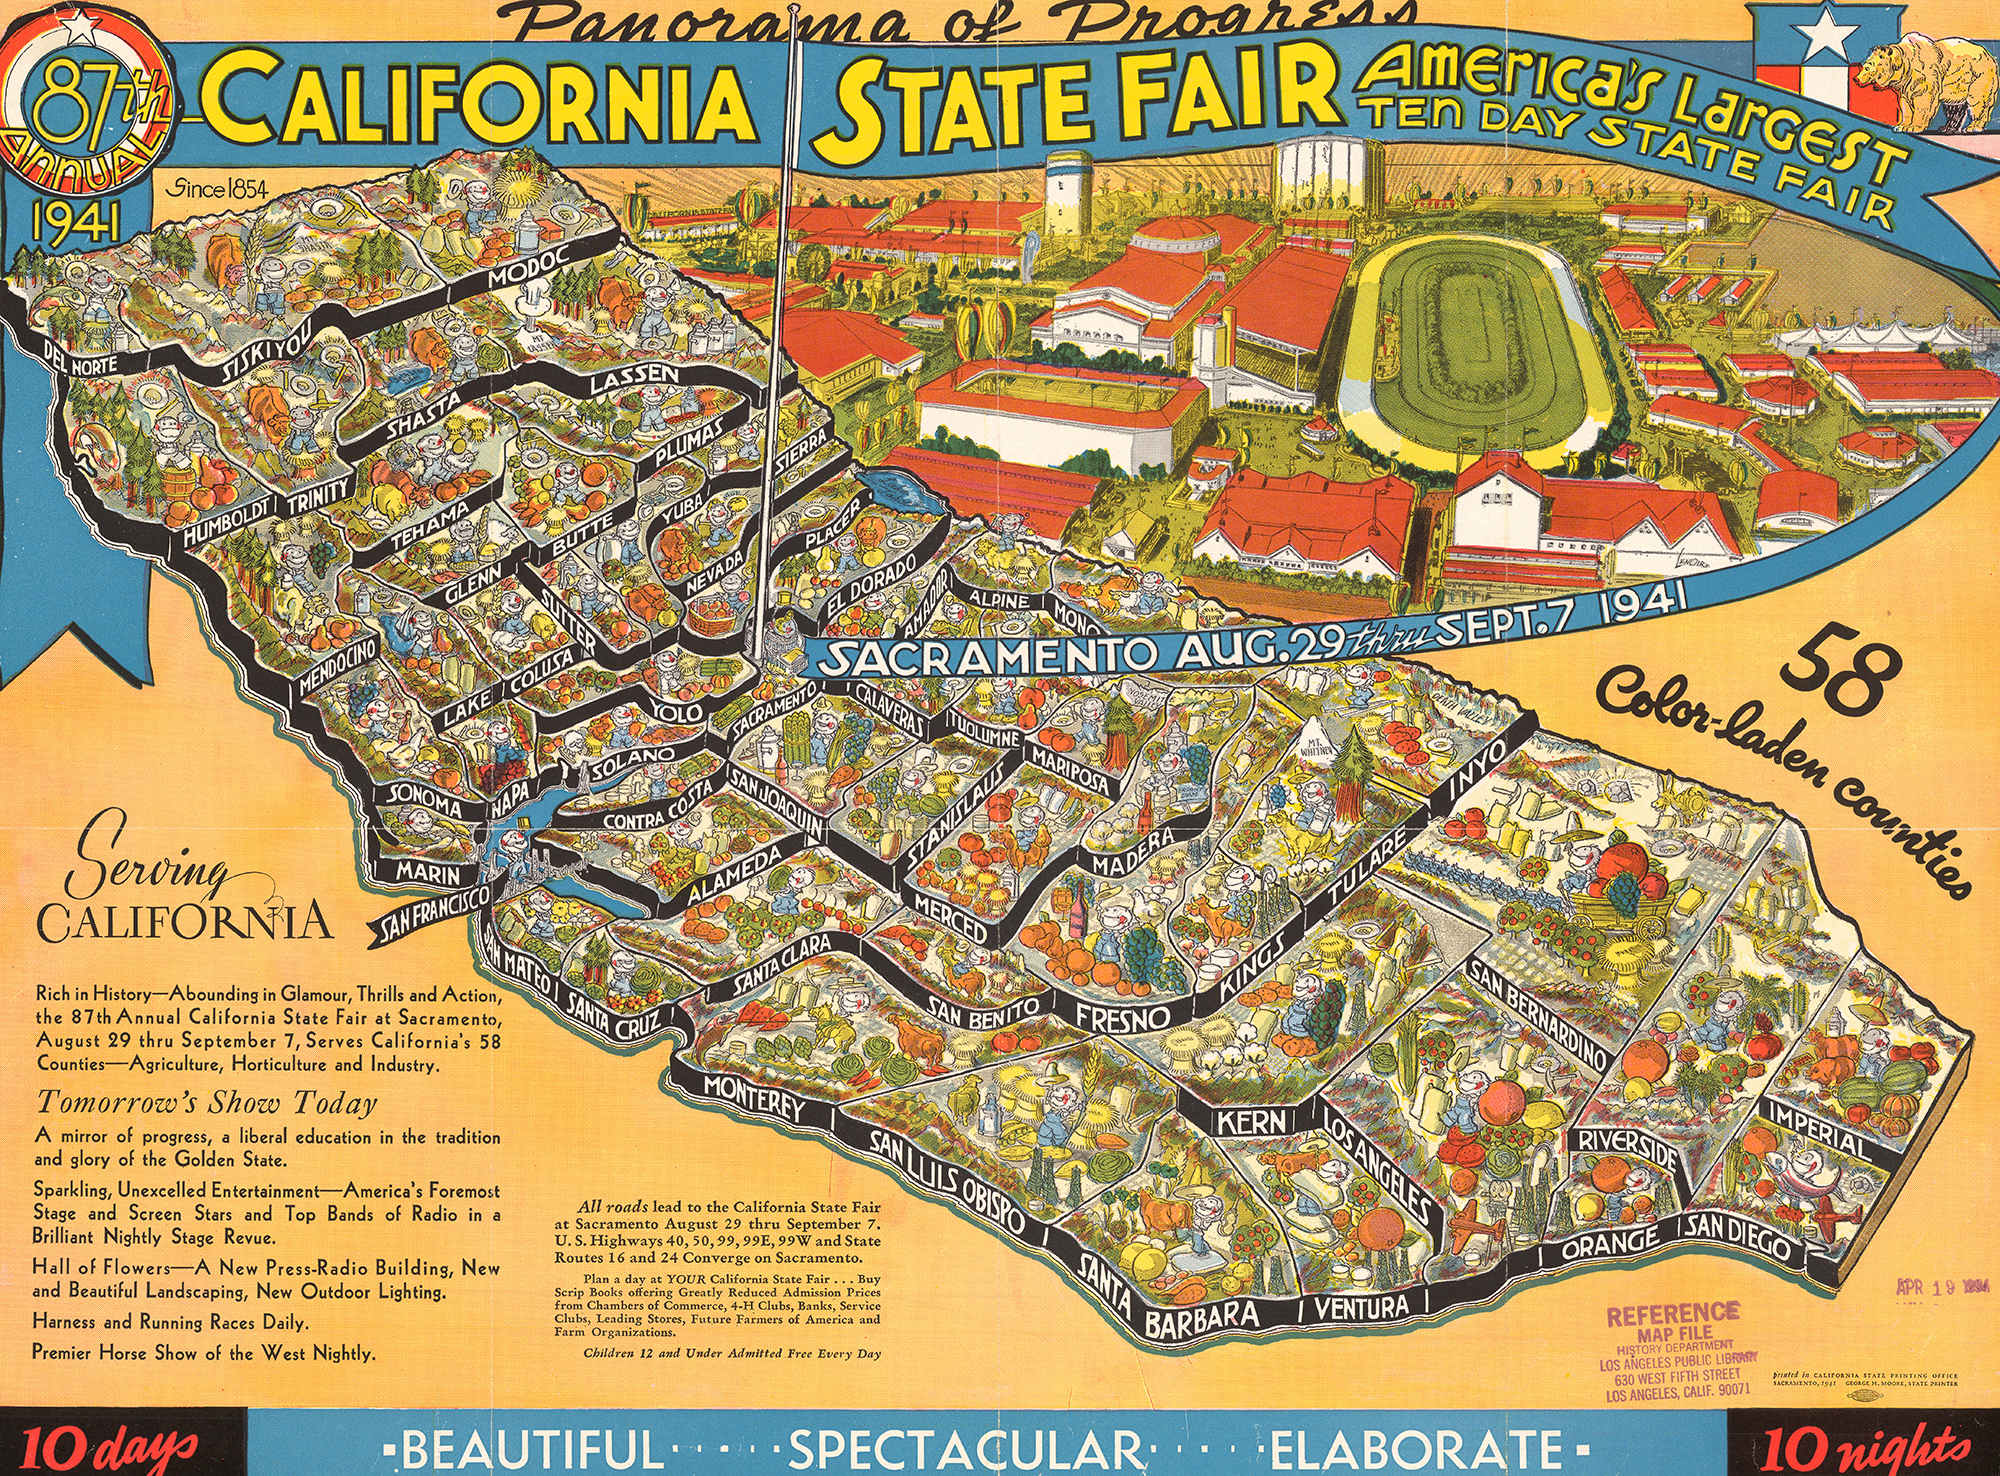 CityDig: This 1941 Map Shows Off the California State Fair's ... on